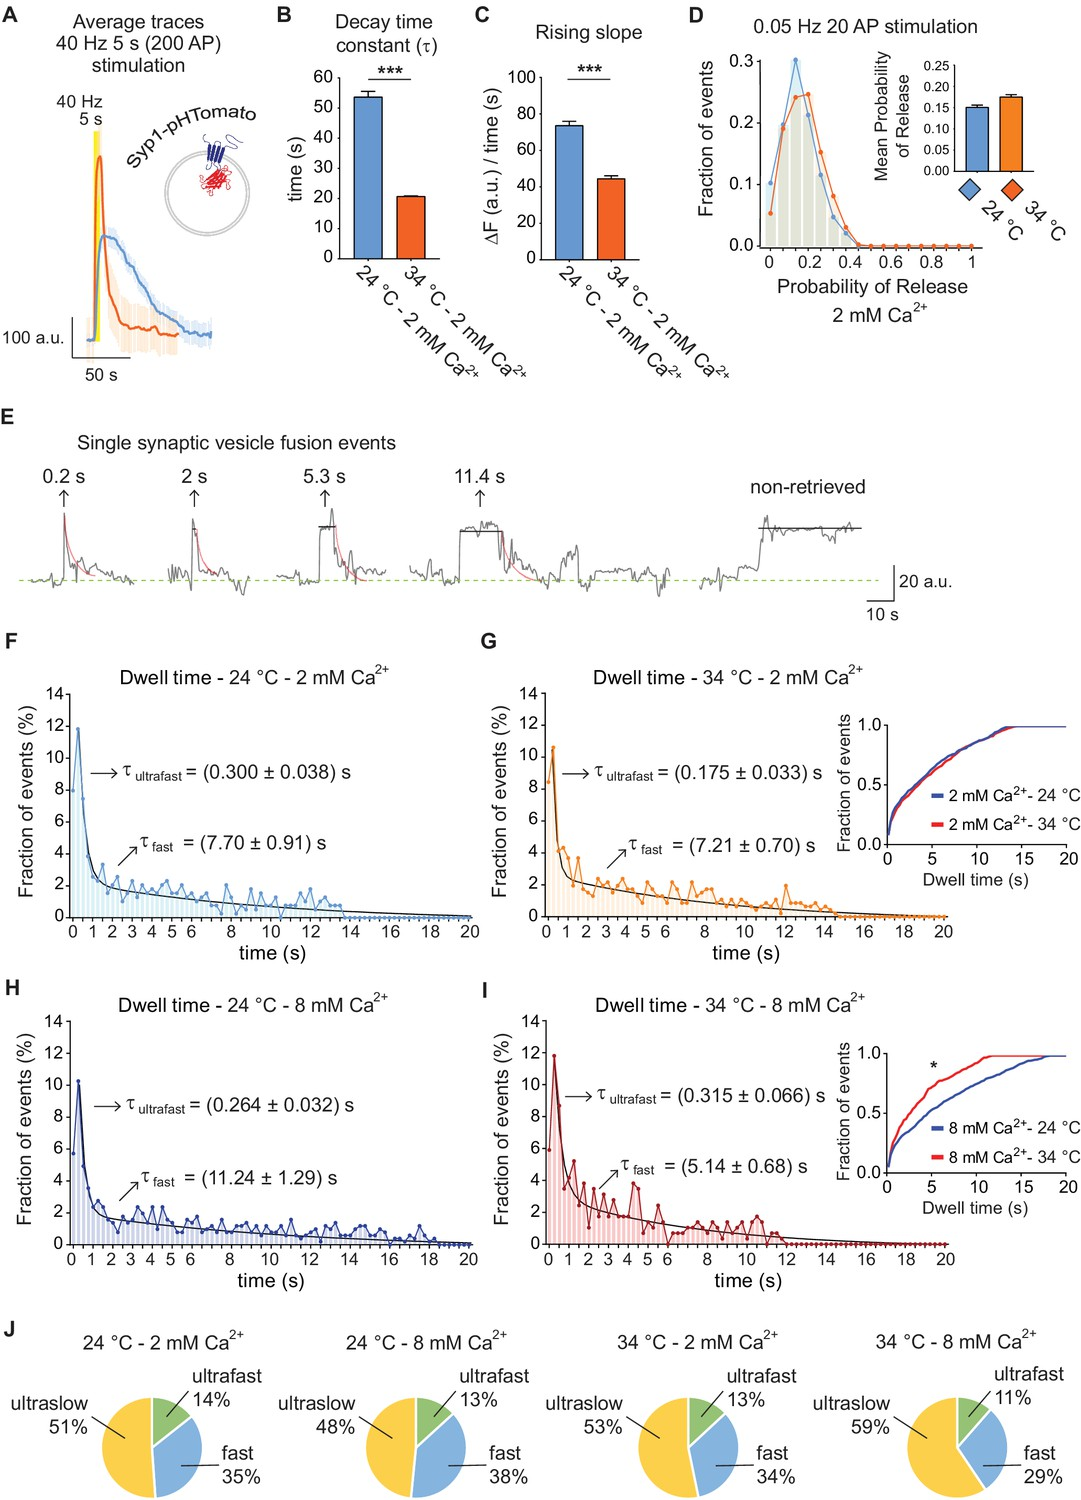 Optical Detection Of Three Modes Endocytosis At Hippocampal Uv Protection Yellow Fluor Trafficking Syp1 Phtomato Different Temperatures Reproduces Vglut1 Phluorin Behavior